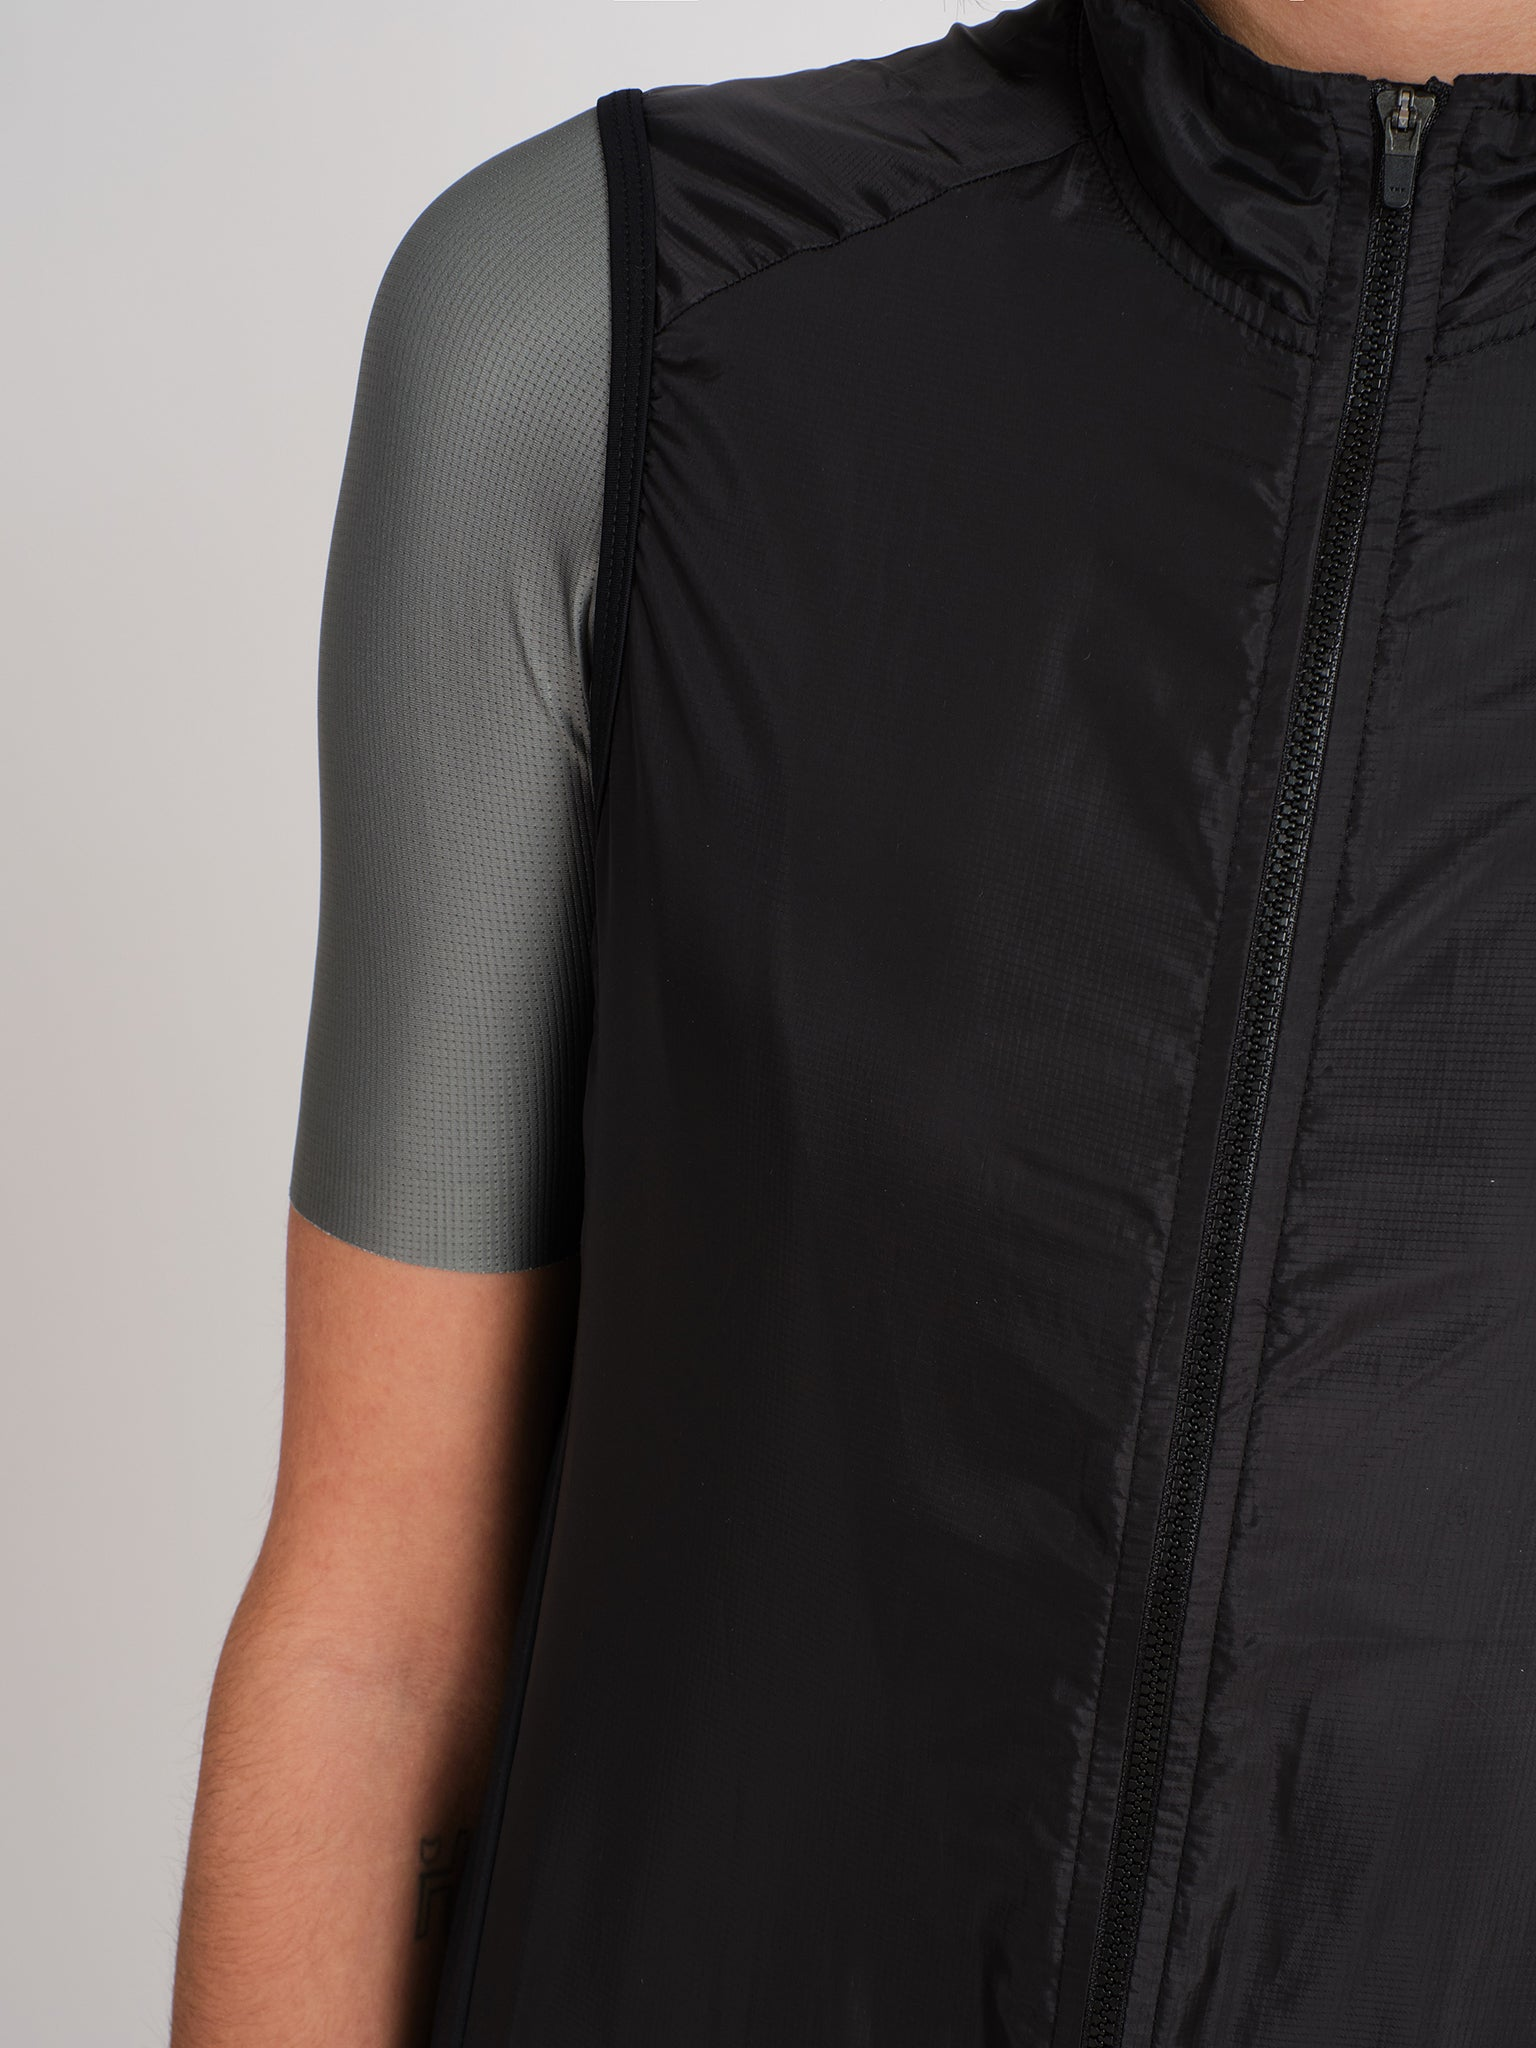 Minimalist black cycling gilet/vest with bbuc logo for women